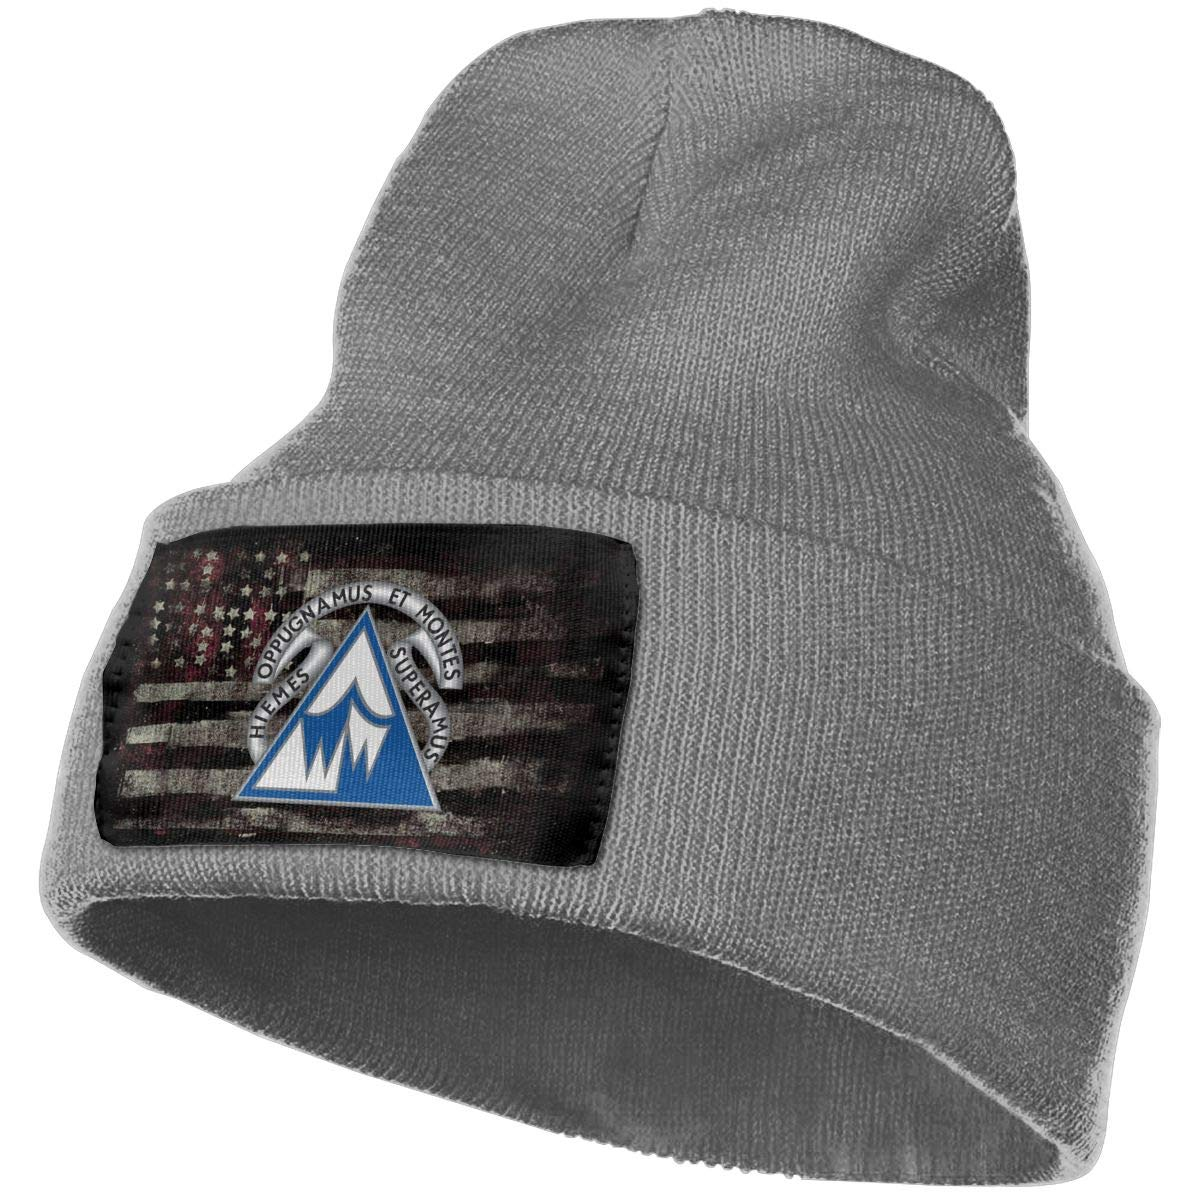 US Army Nuclear Warfare Command Unit Crest Mens Beanie Cap Skull Cap Winter Warm Knitting Hats.